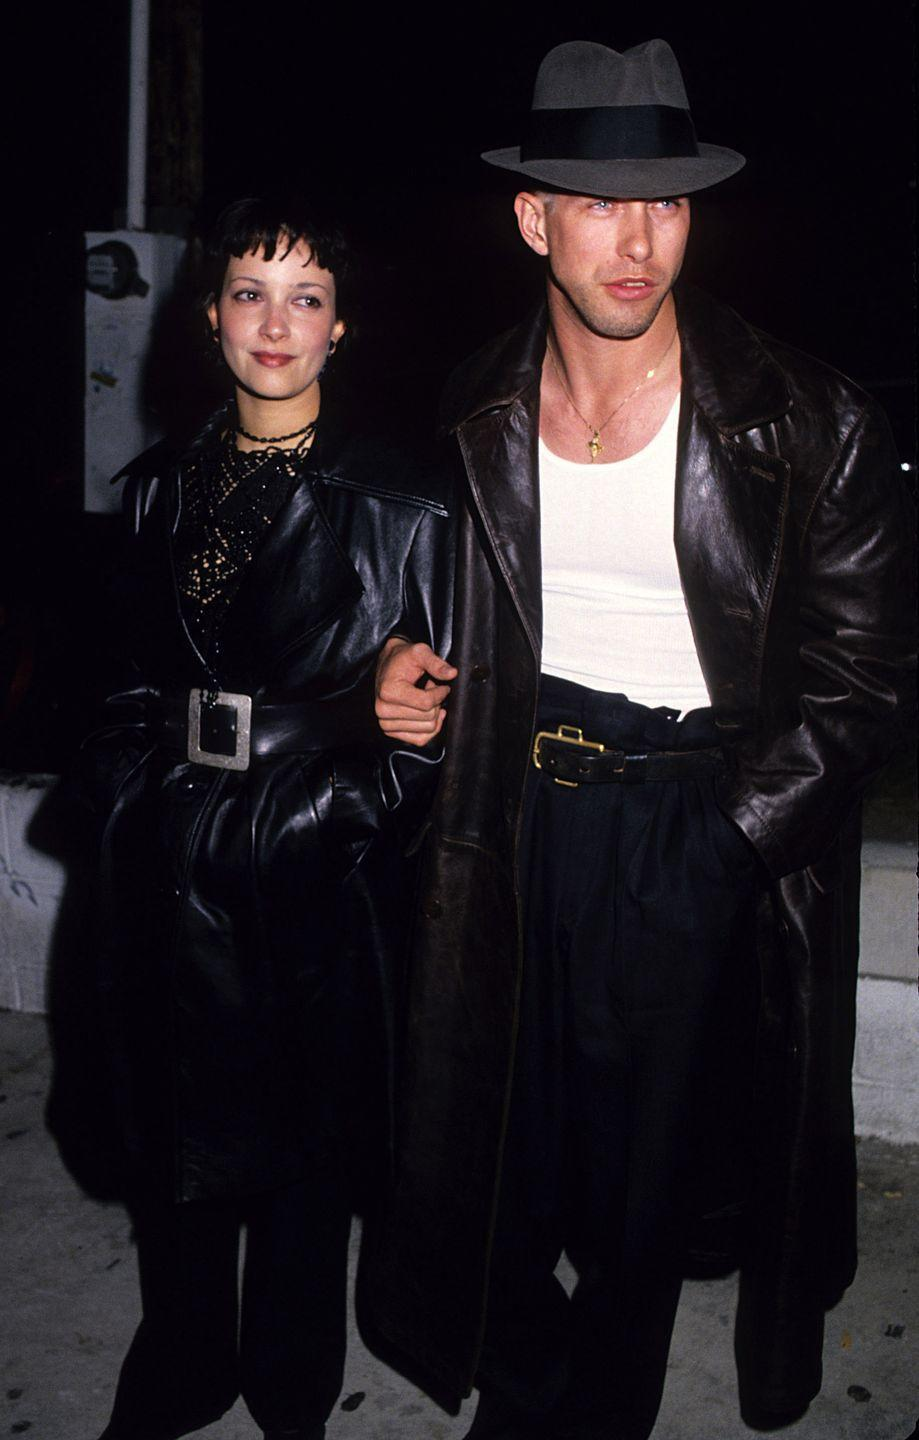 <p>Stephen Baldwin at the Viper Room for AIDS benefit on April 9, 1994.</p>